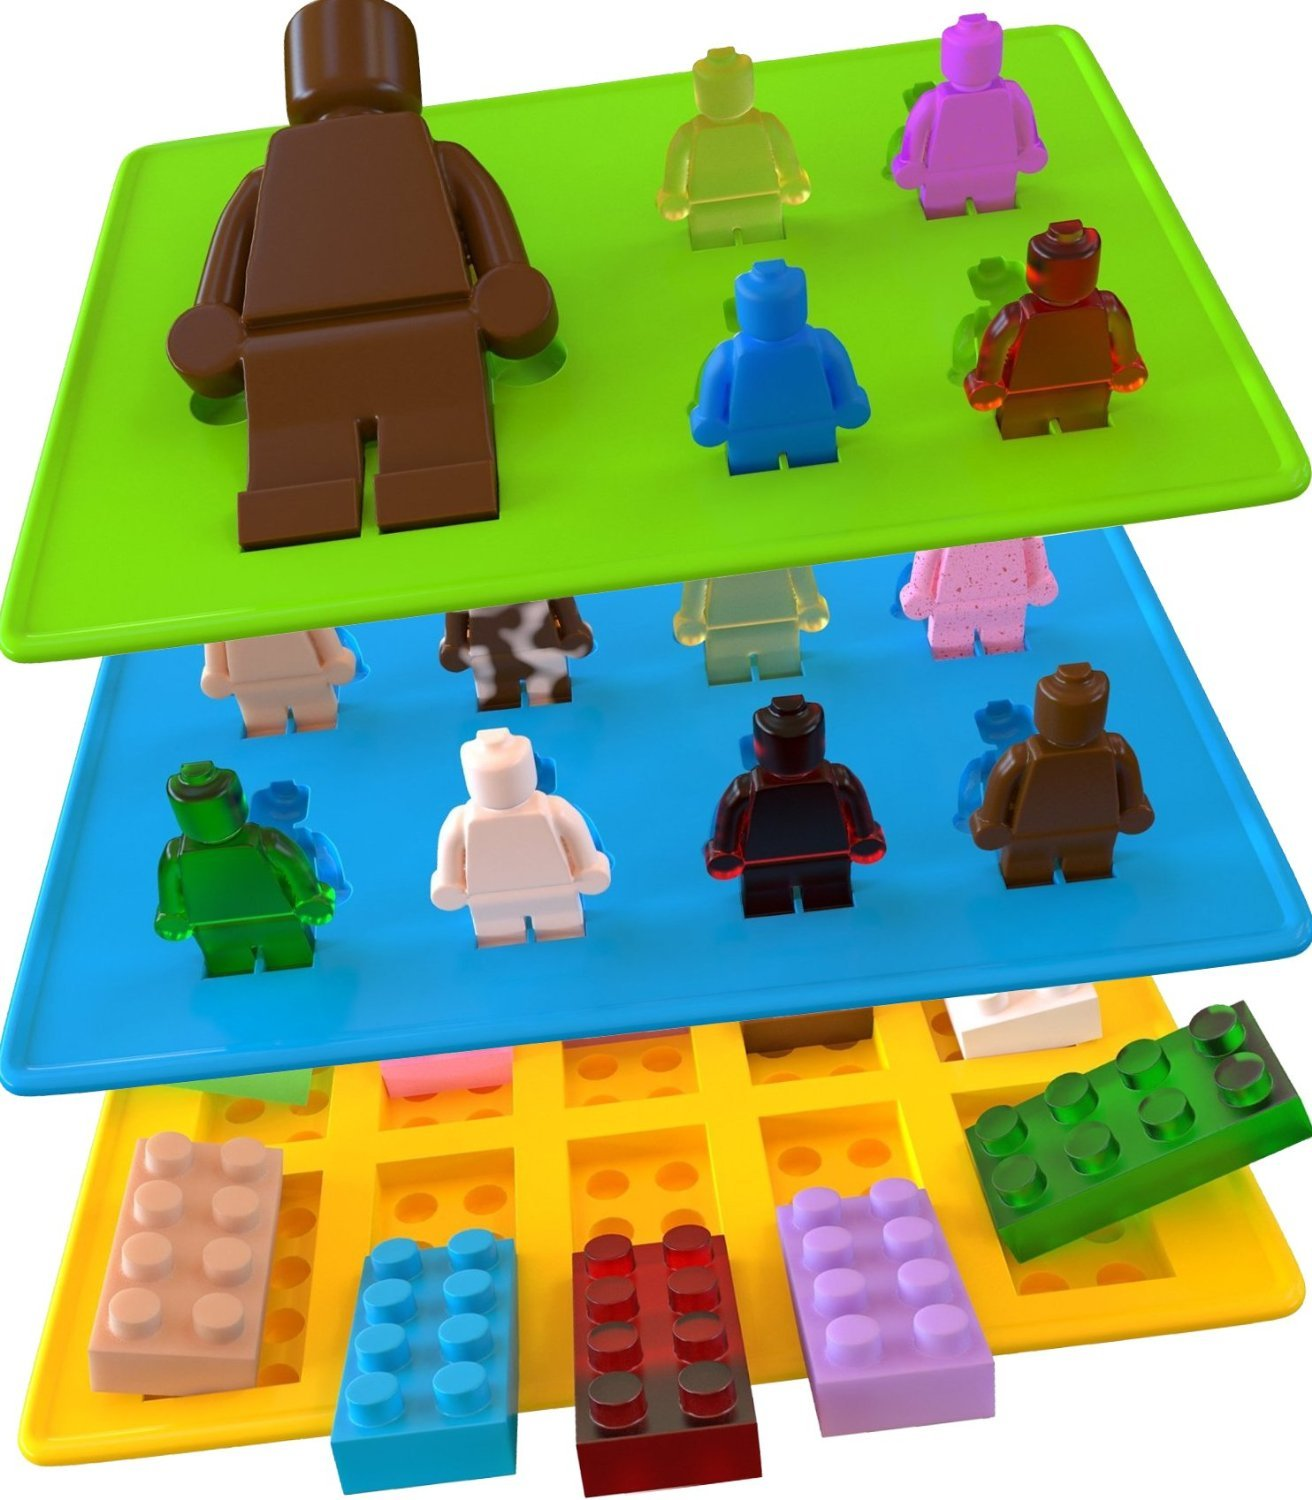 Yellow Building Brick & Blue & Green Multi-size Minifigure Silicone Ice Tray Candy Mold Set (Blue/Green/Yellow, 1) Charmed